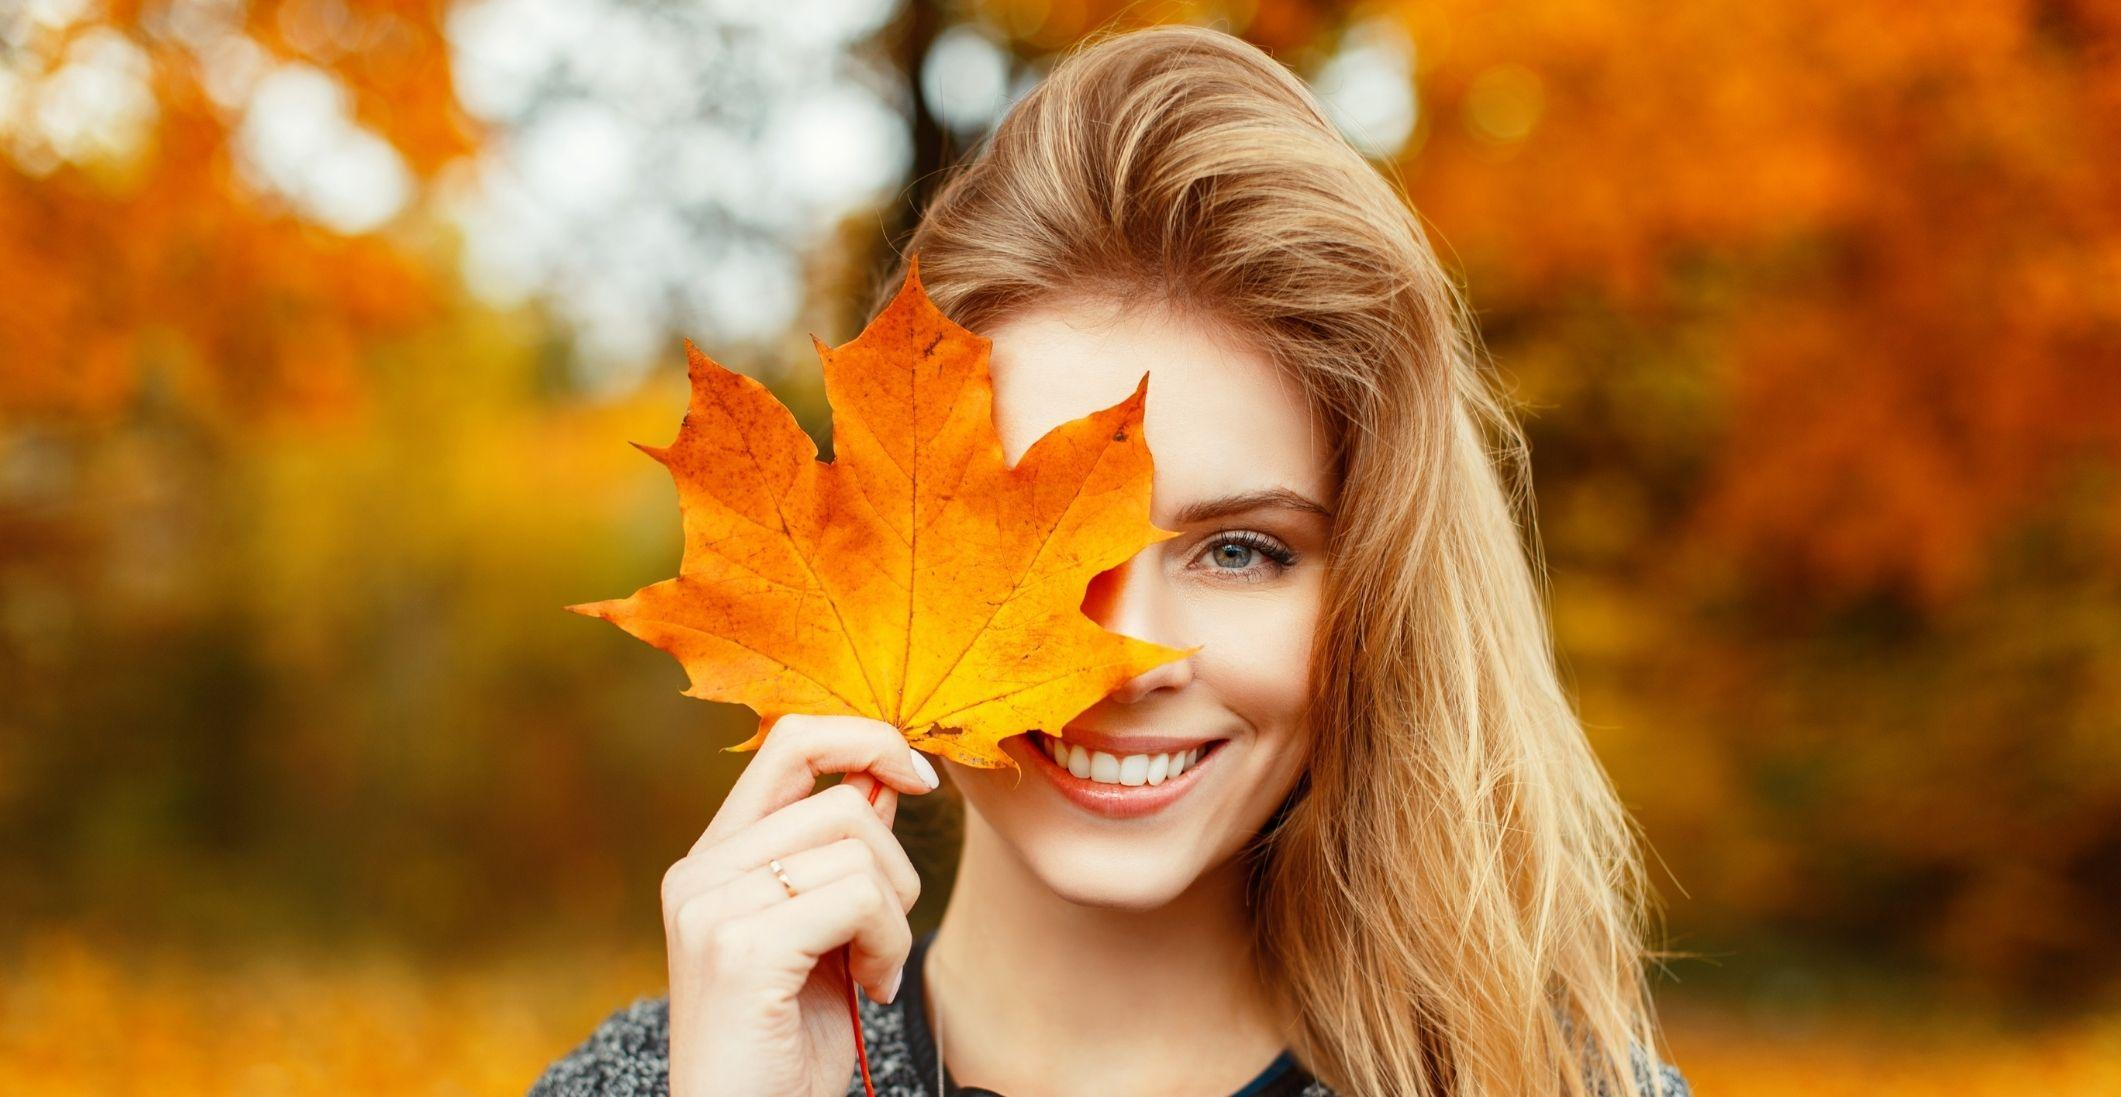 How To Keep Your Hair Healthy This Fall